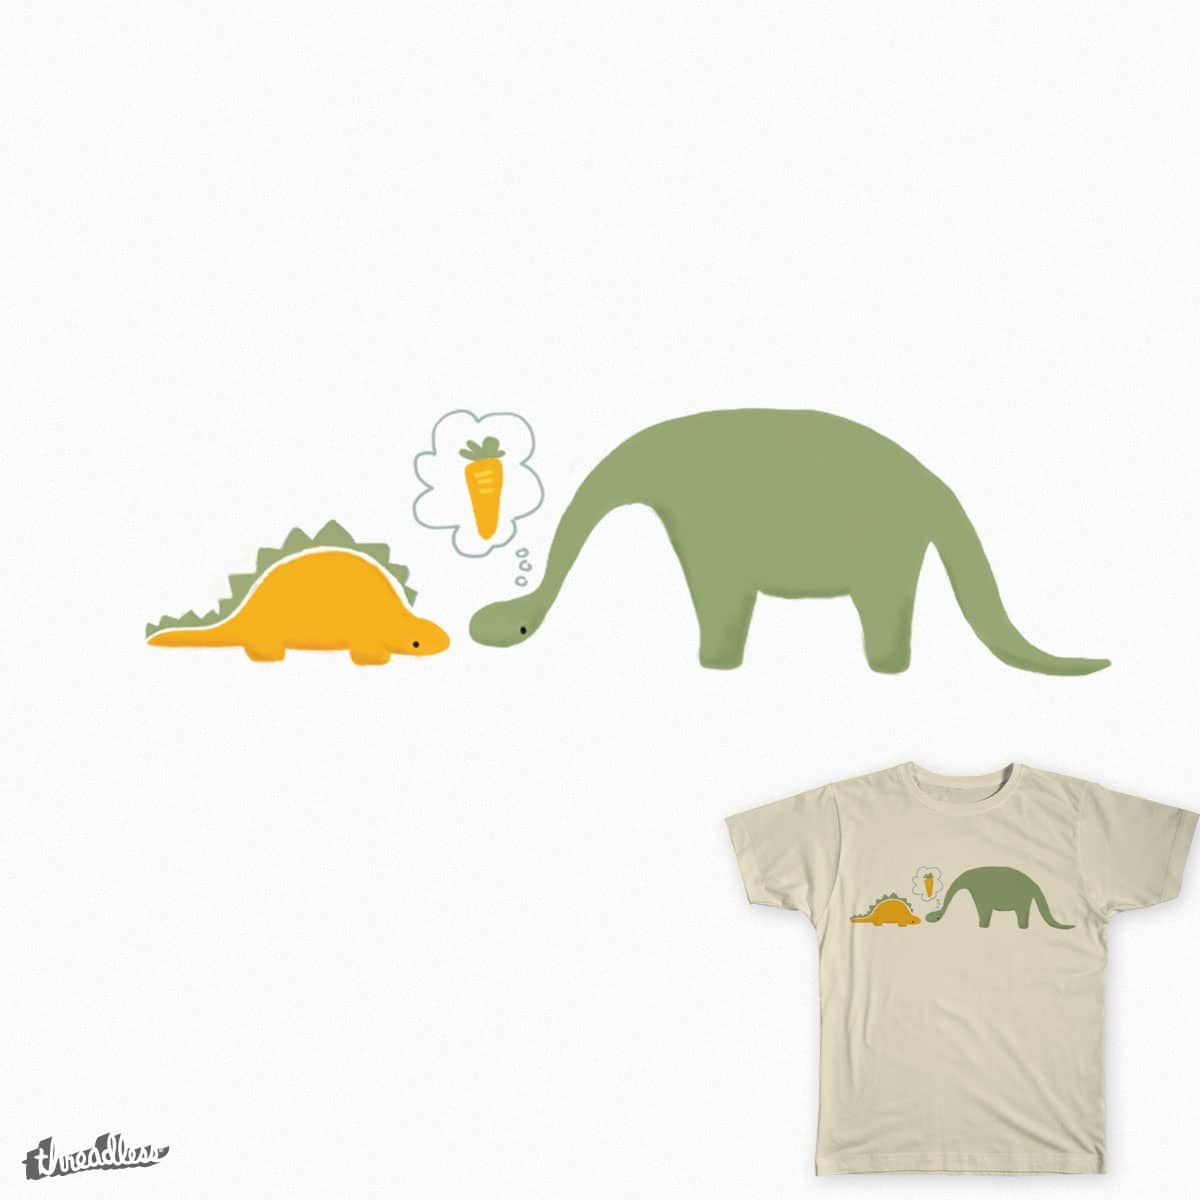 Uncanny Resemblance  by mandyljq on Threadless